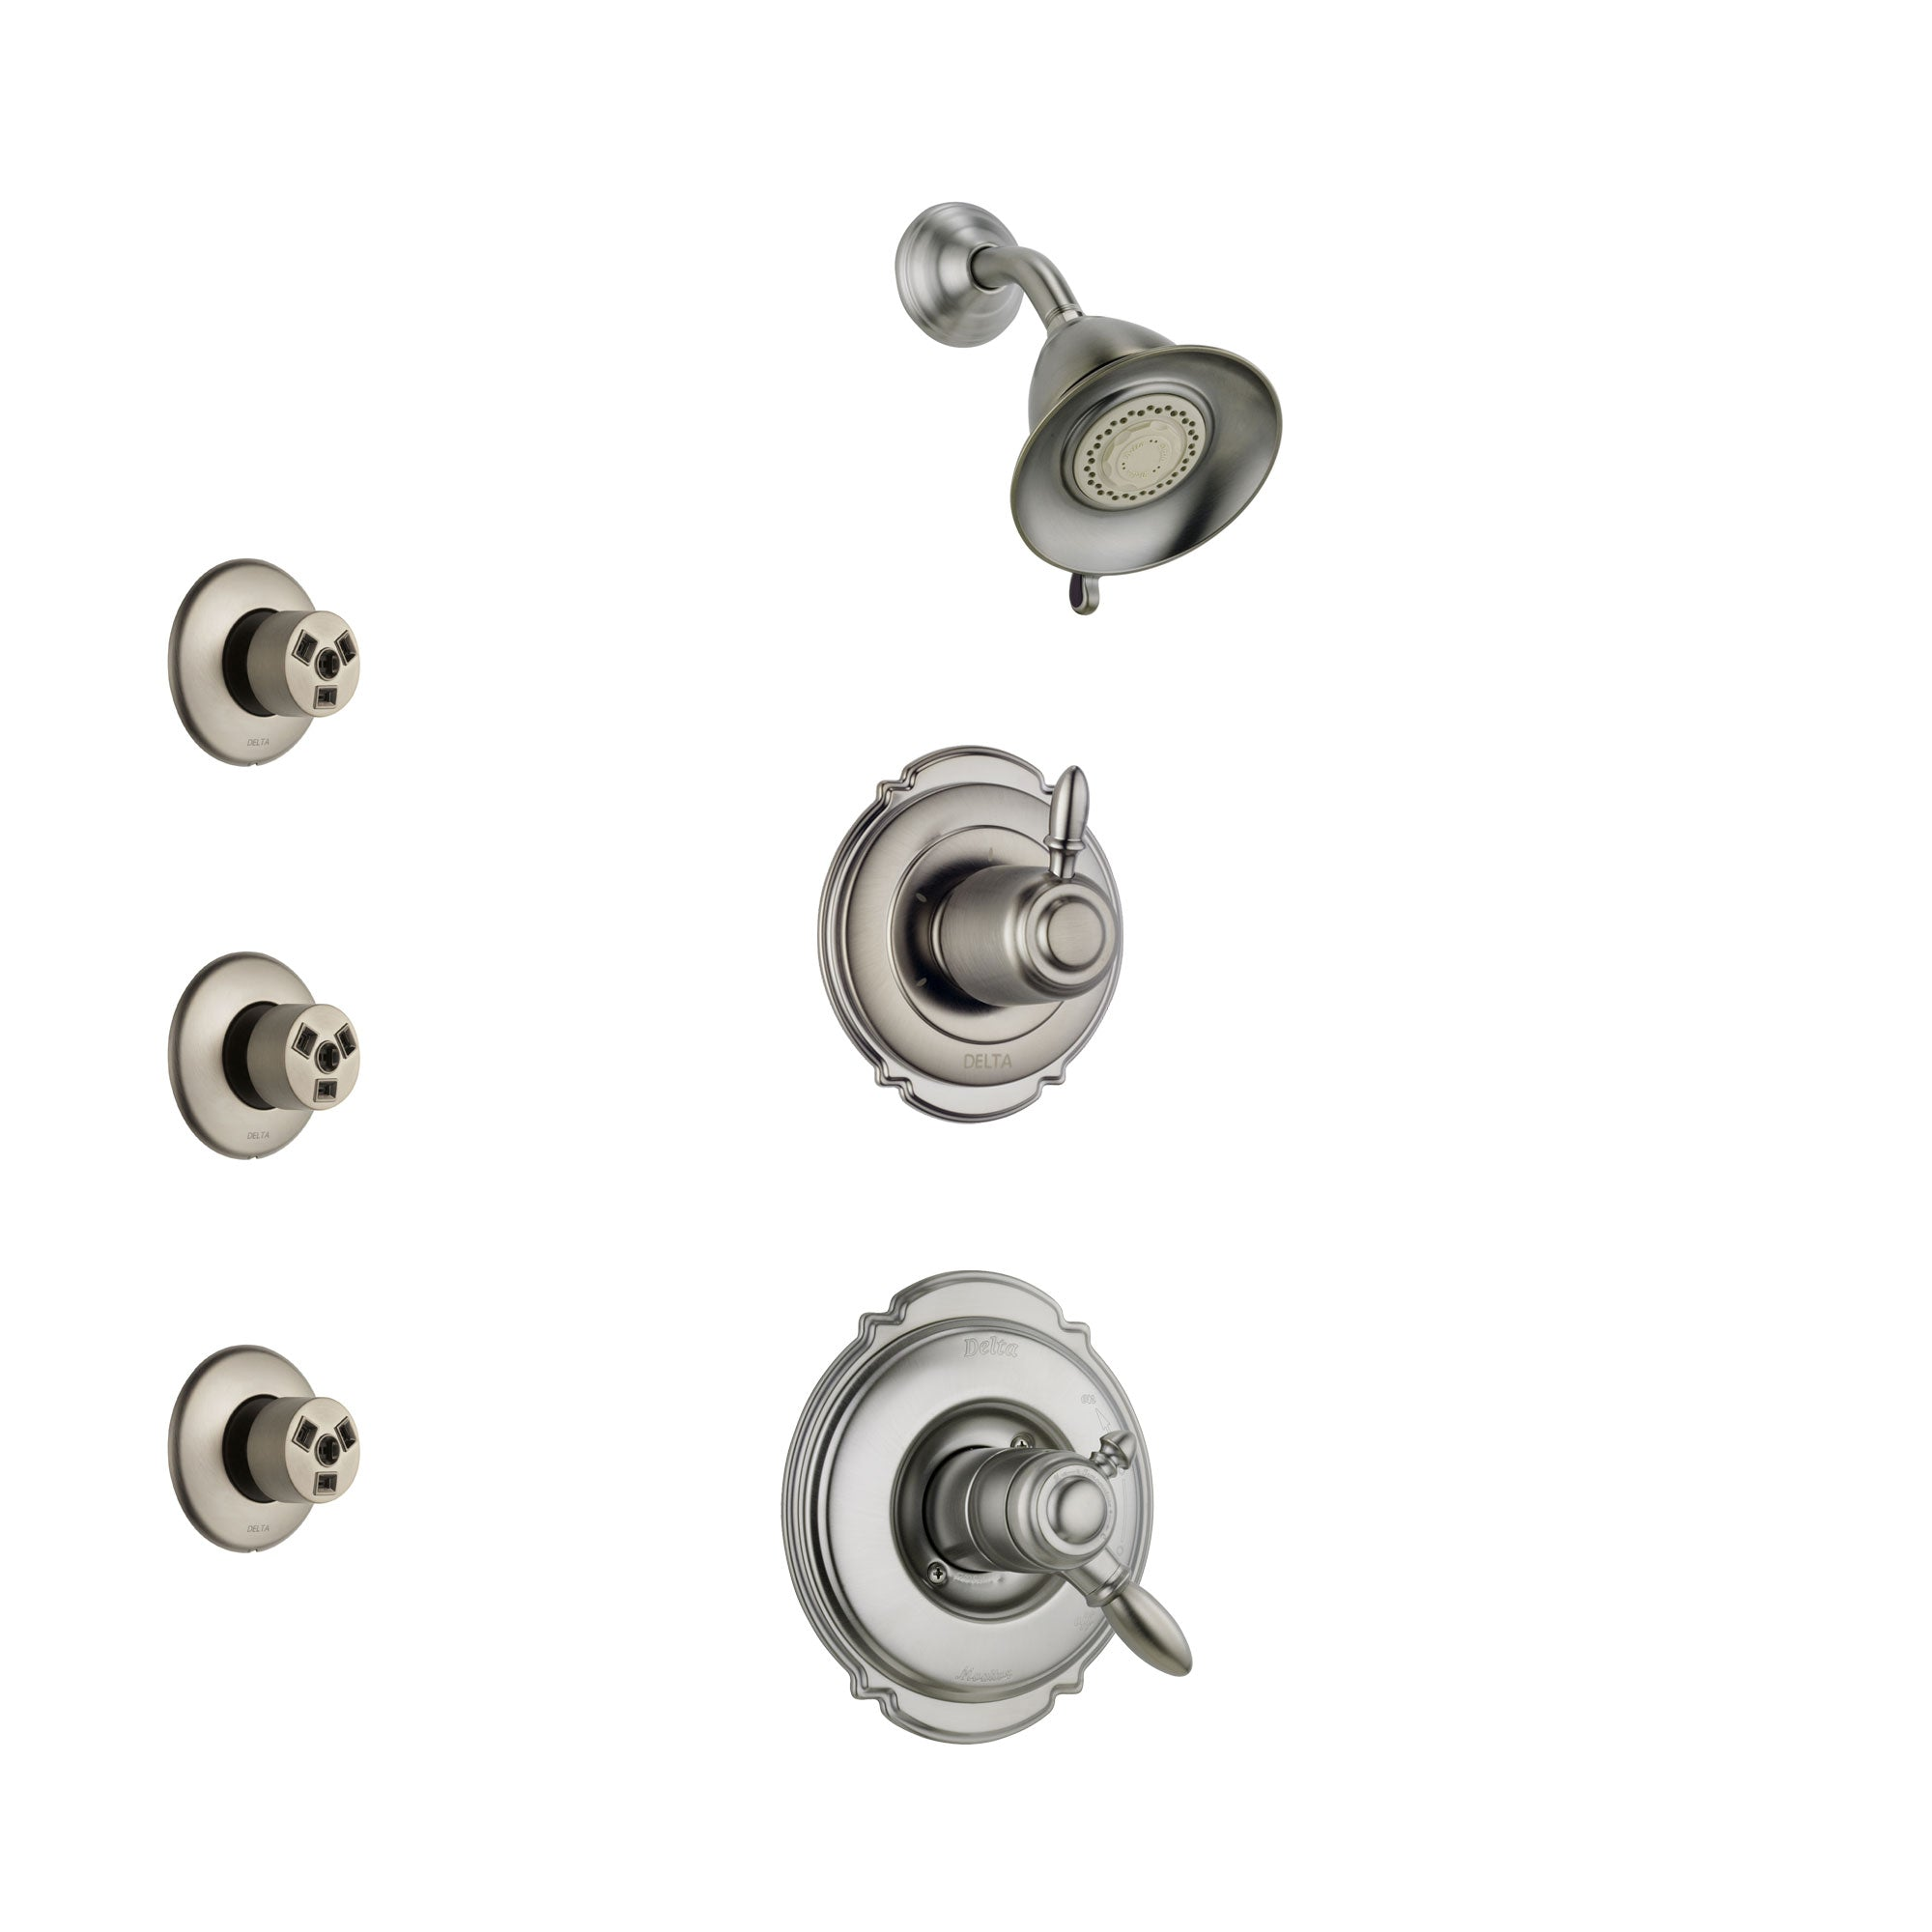 Delta Victorian Stainless Steel Finish Shower System with Dual Control Handle, 3-Setting Diverter, Showerhead, and 3 Body Sprays SS172551SS2